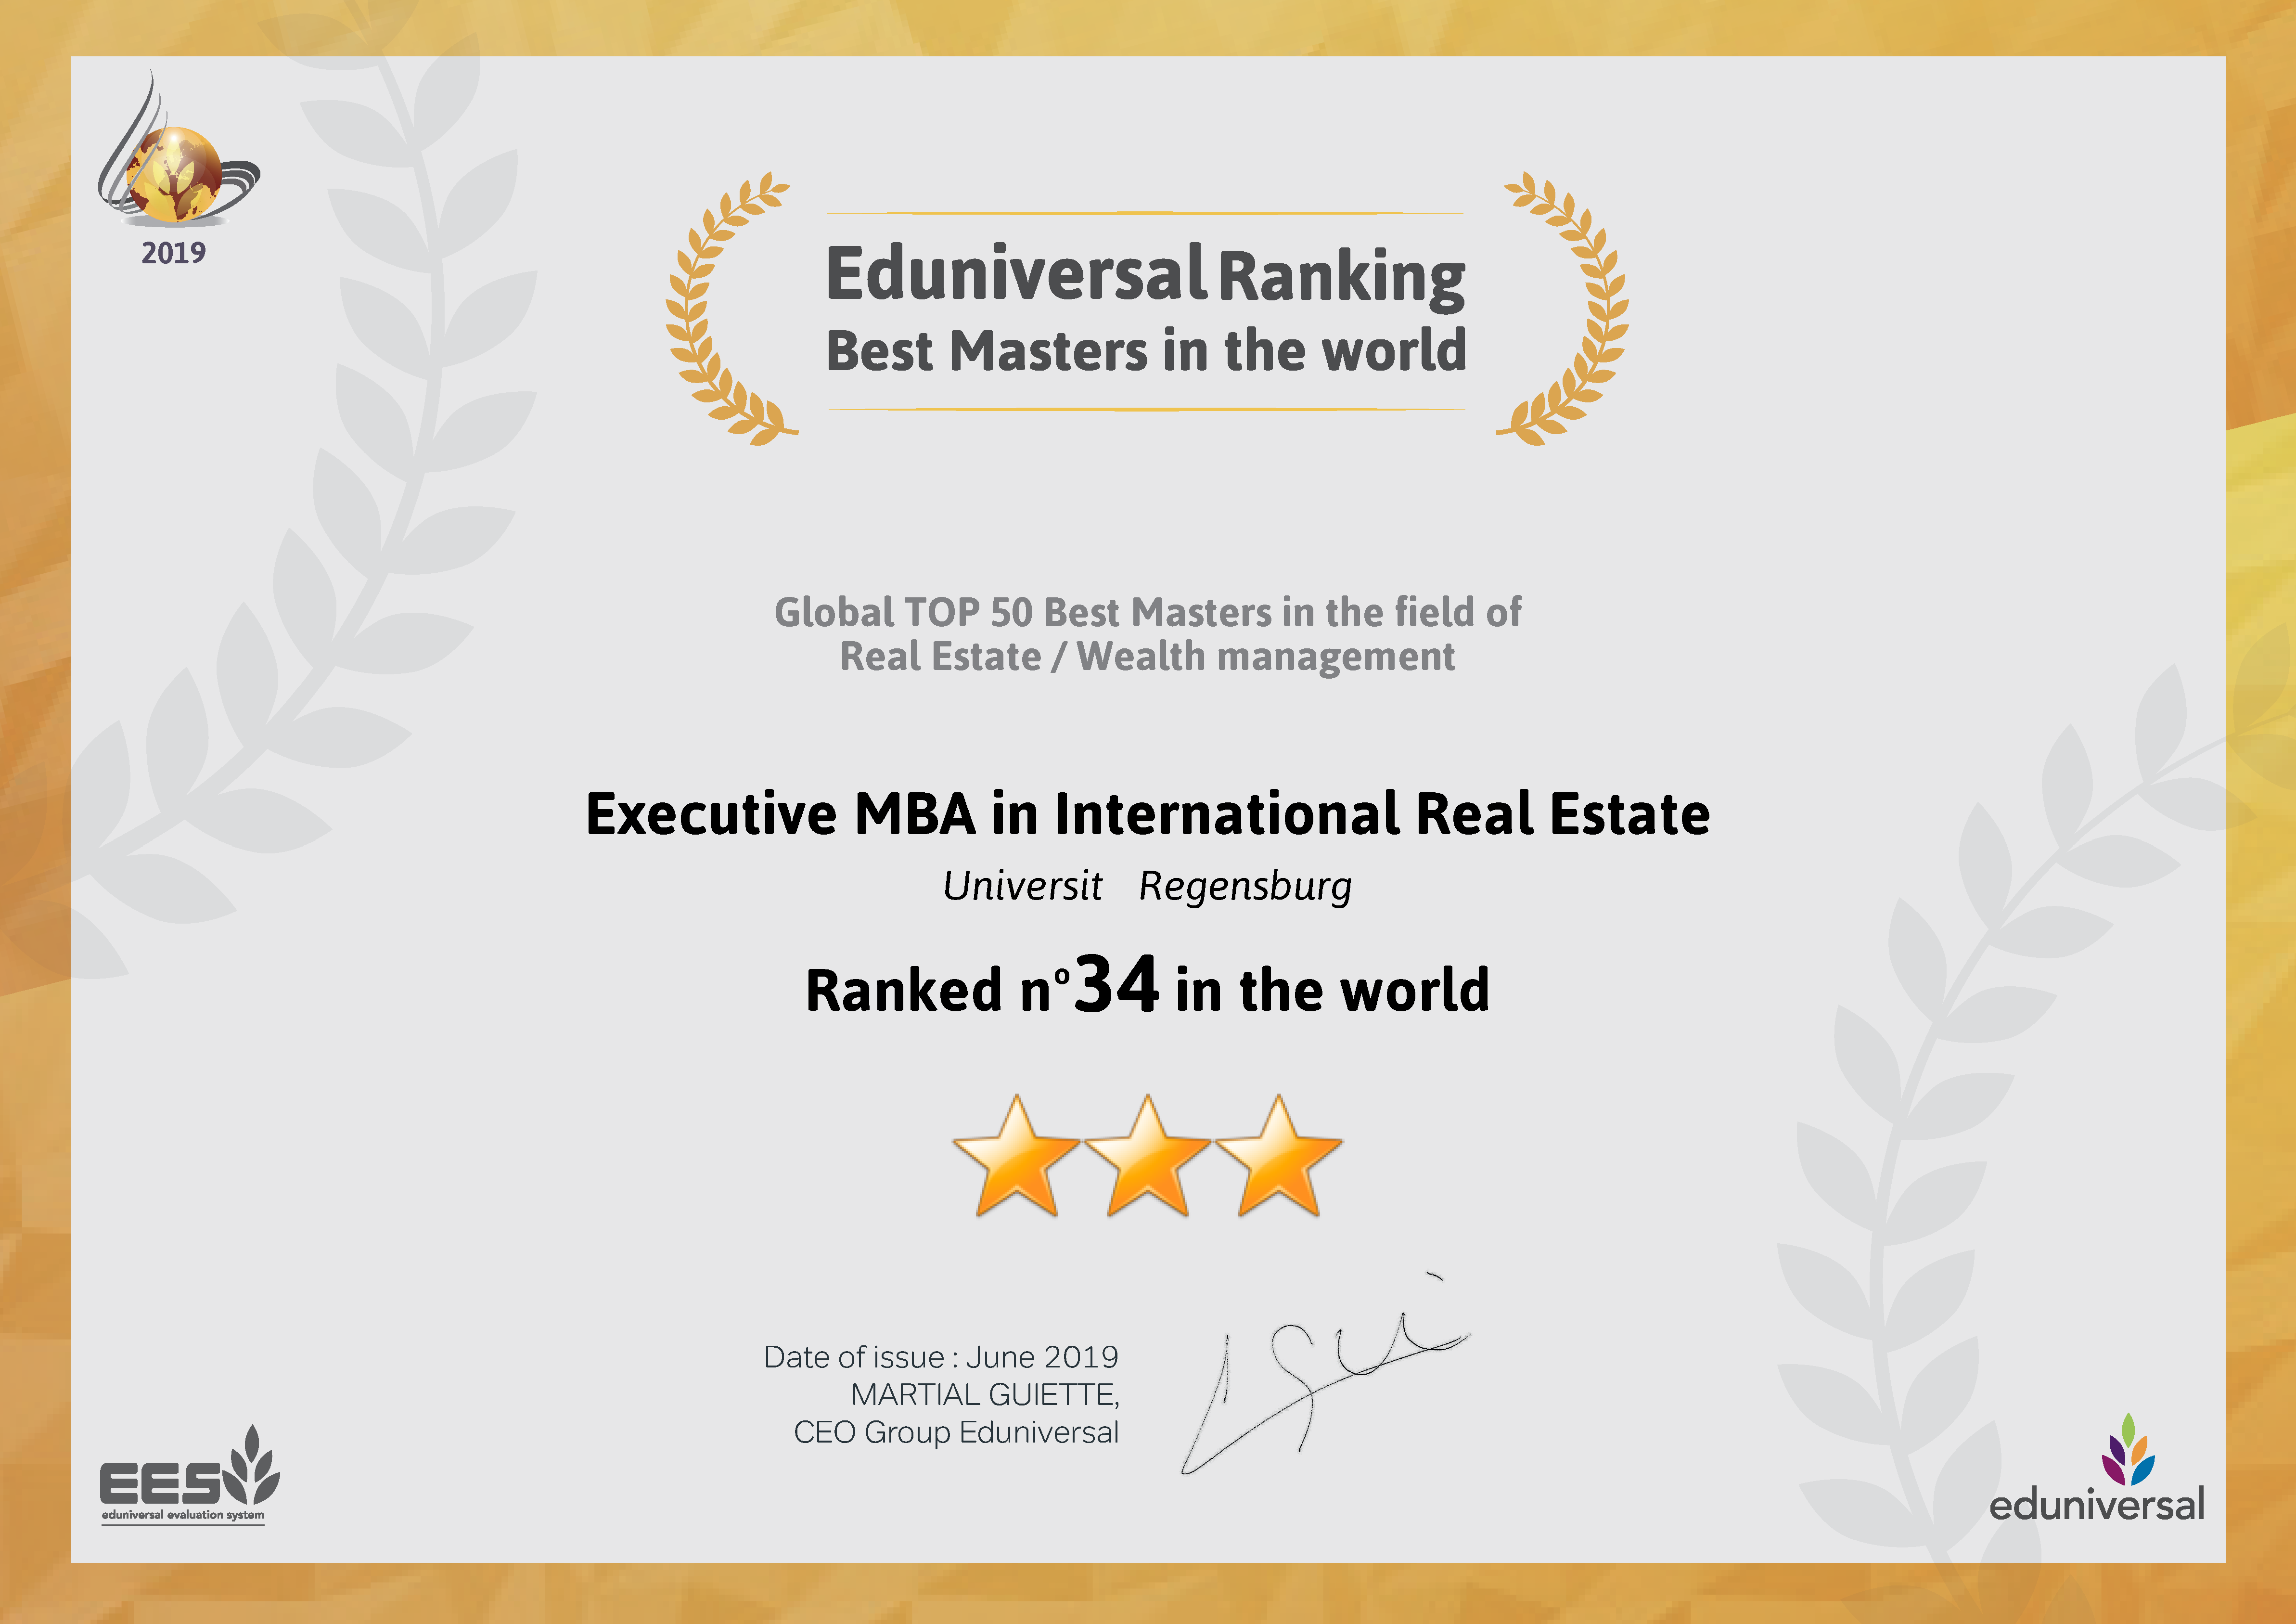 Ed Universal Ranking - Best Masters in the world - Executive MBA in international Real Estate - RAnked No. 34 in the world